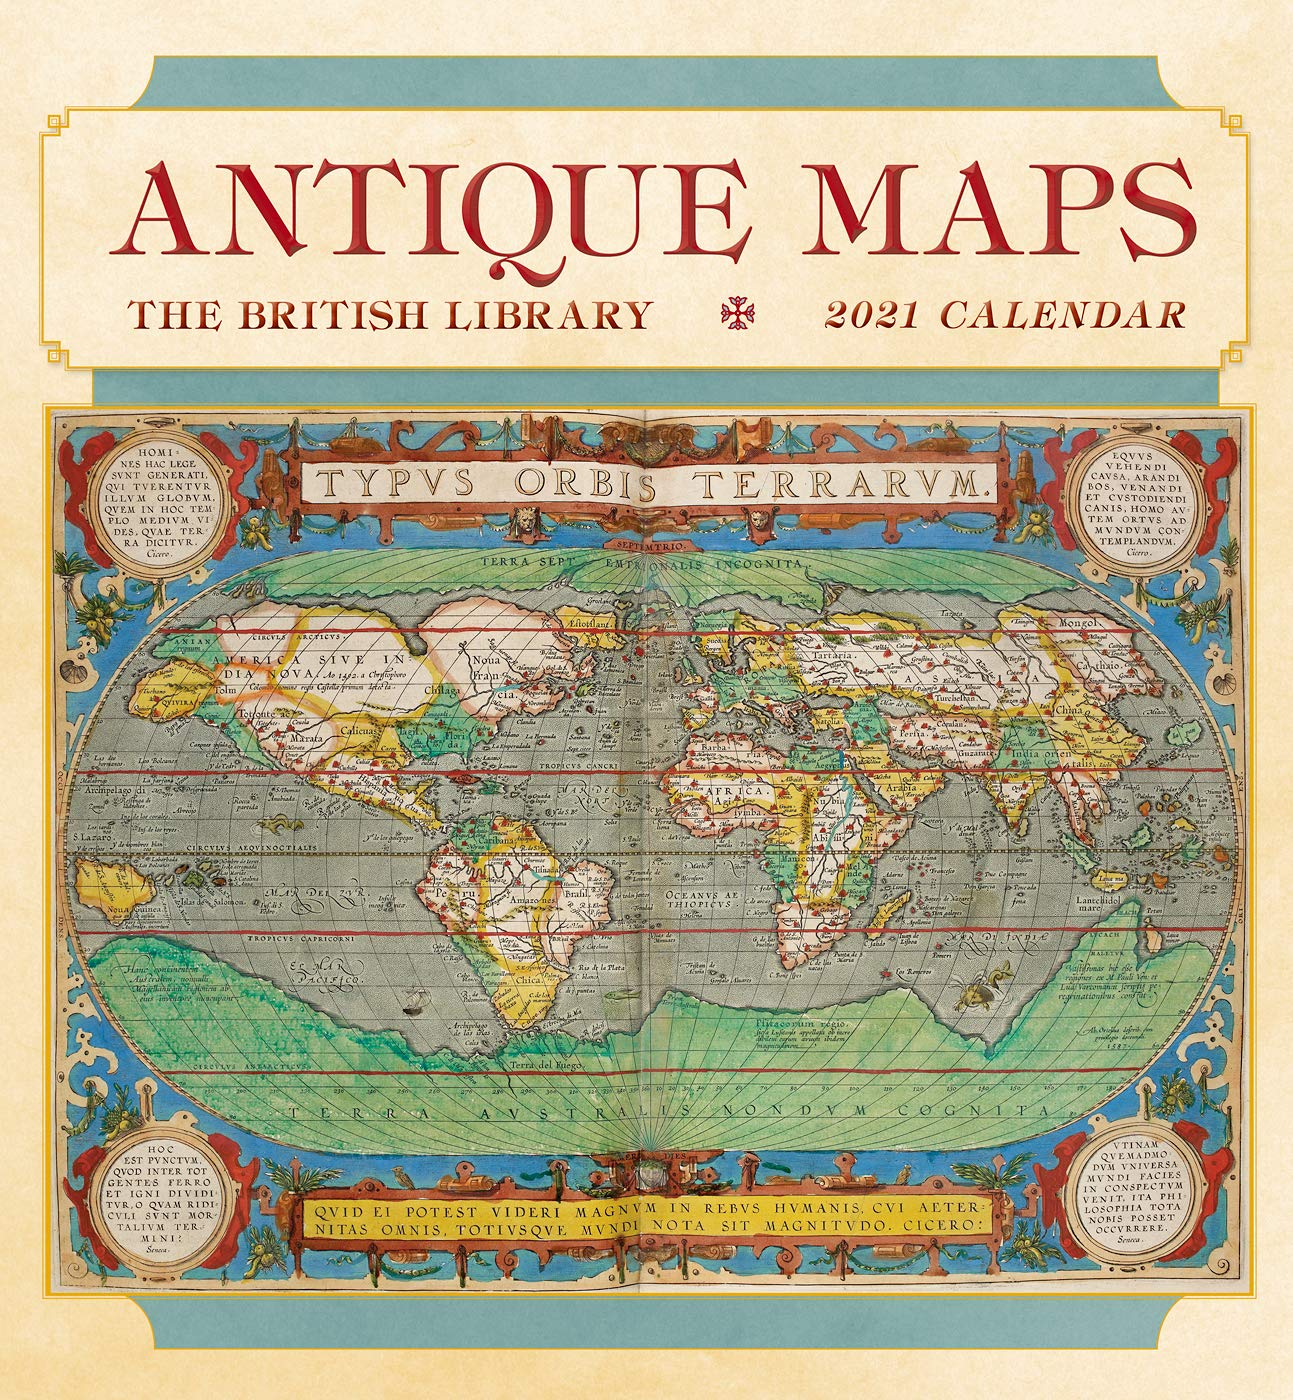 Antique Maps 2021 Wall Calendar: The British Library, Pomegranate